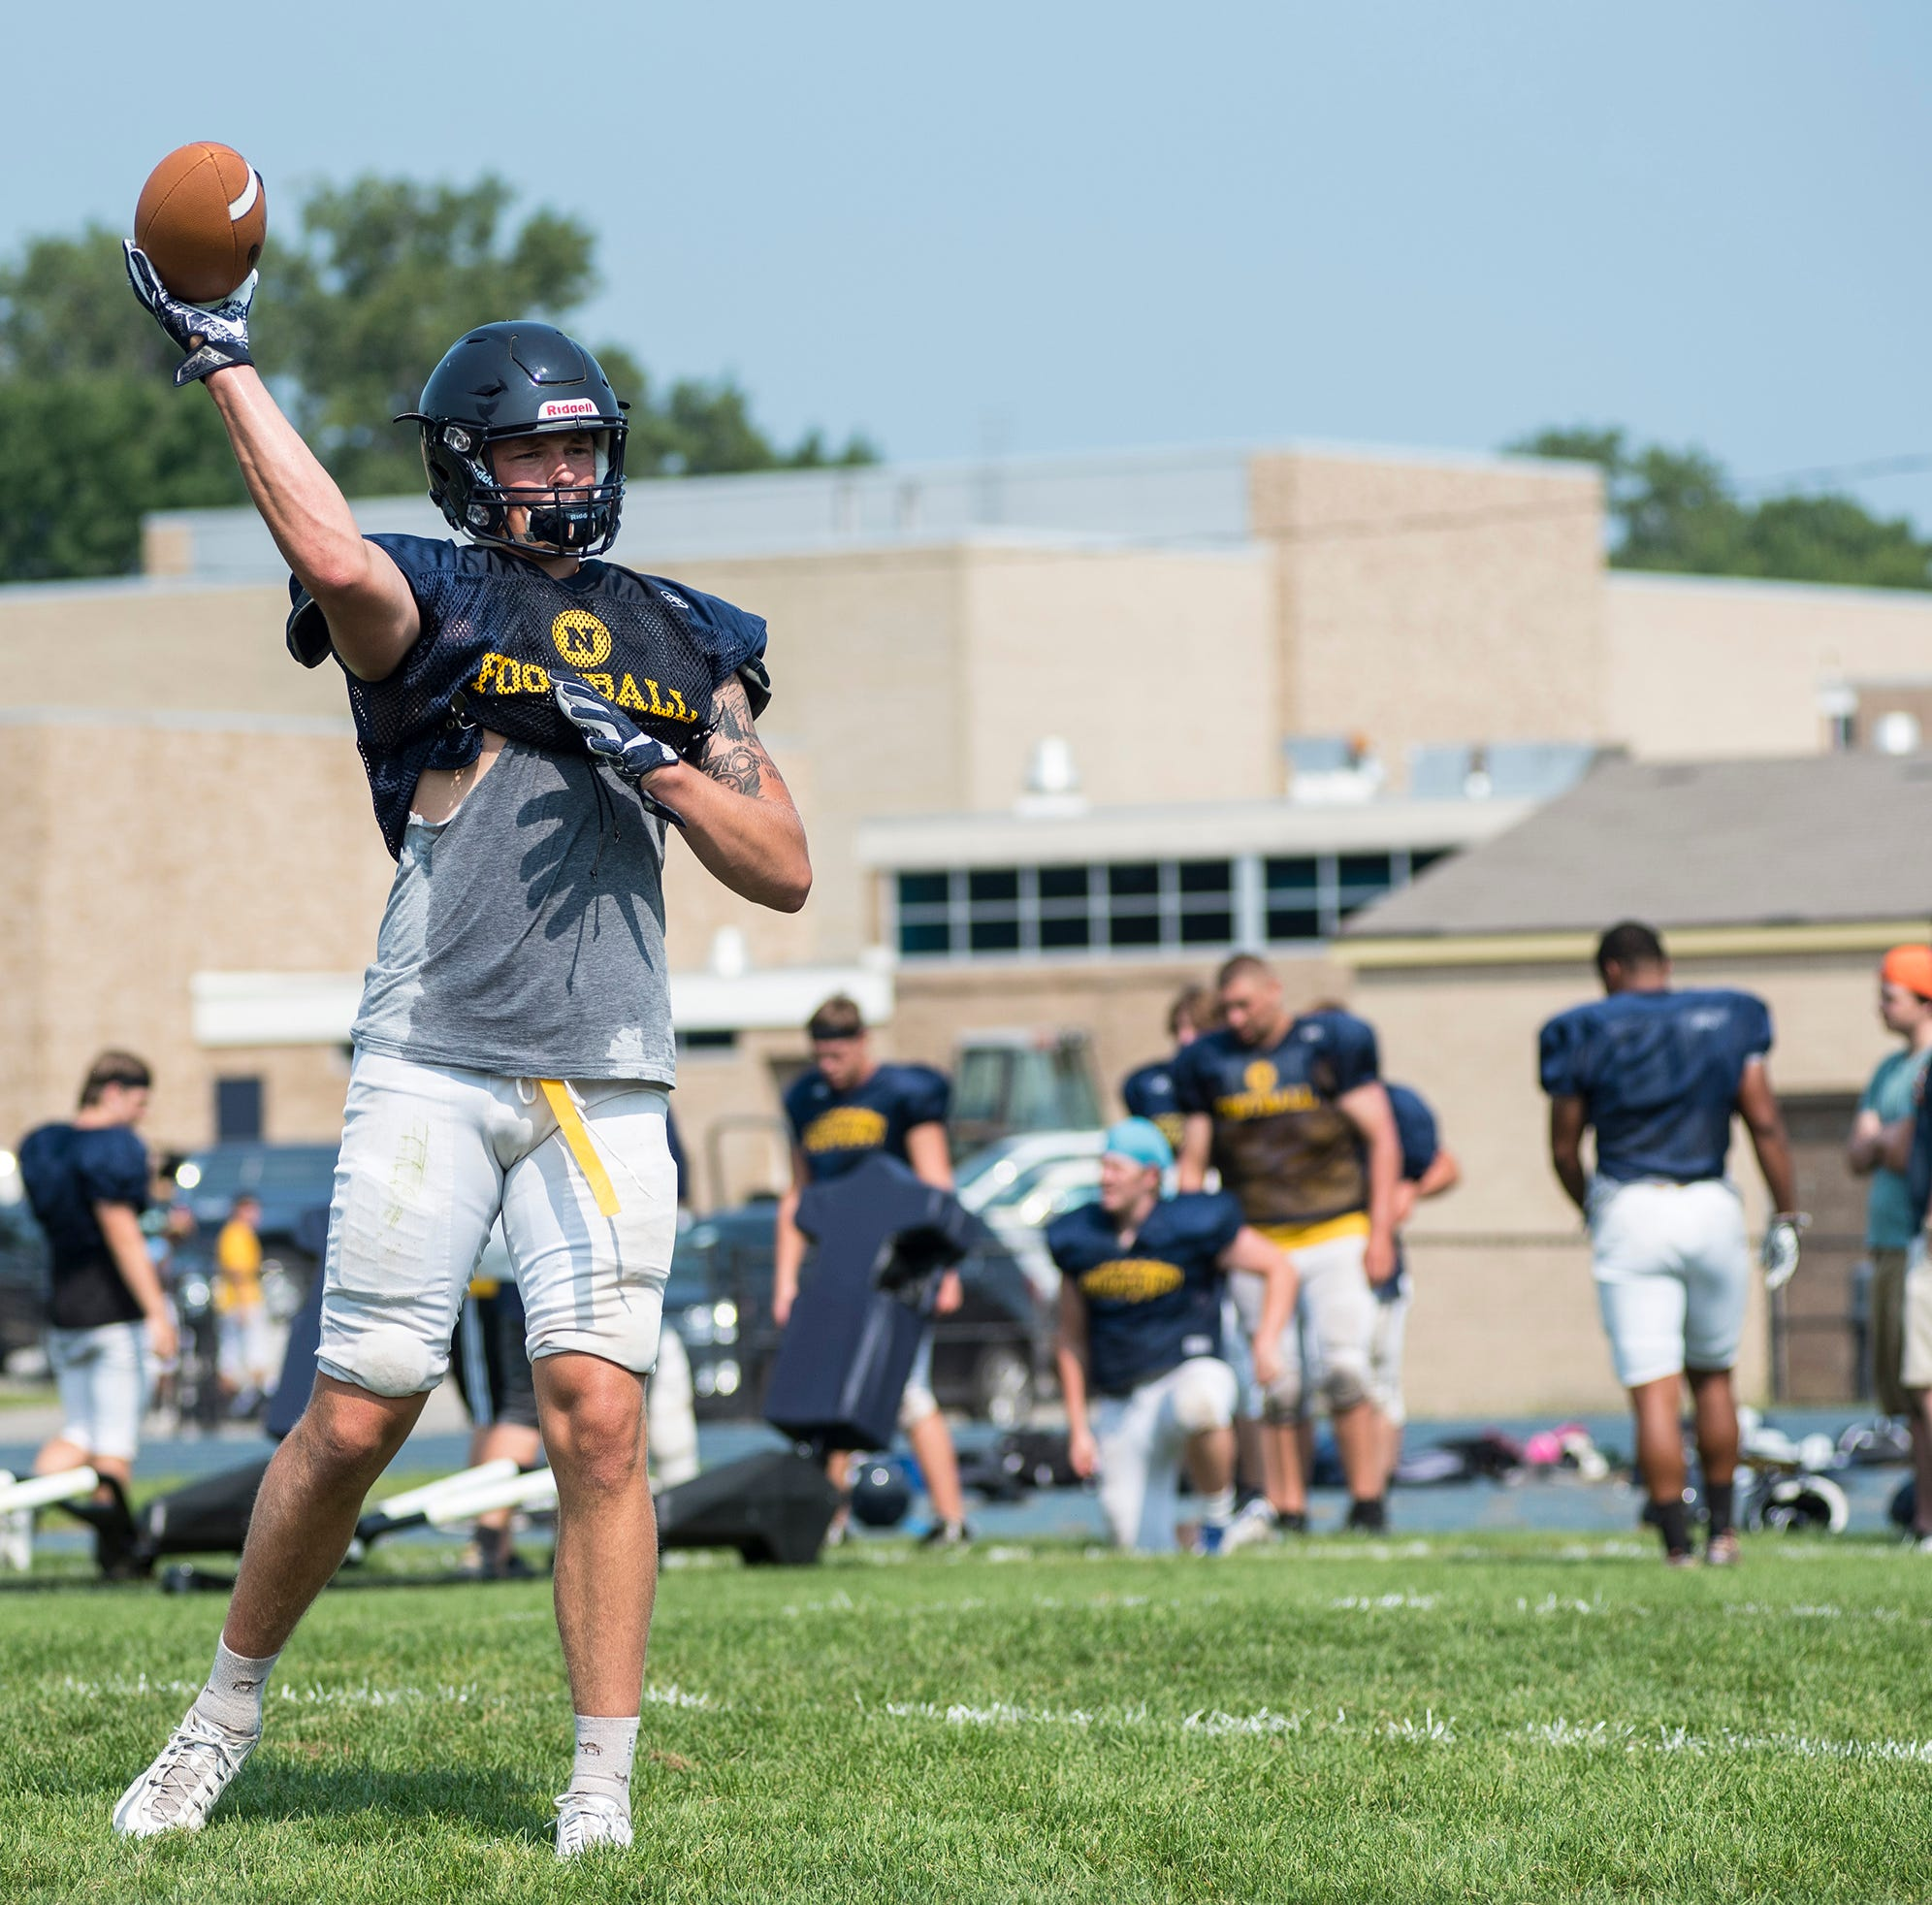 Welcome back, football: Teams see surge in talent, changes in conference alignments